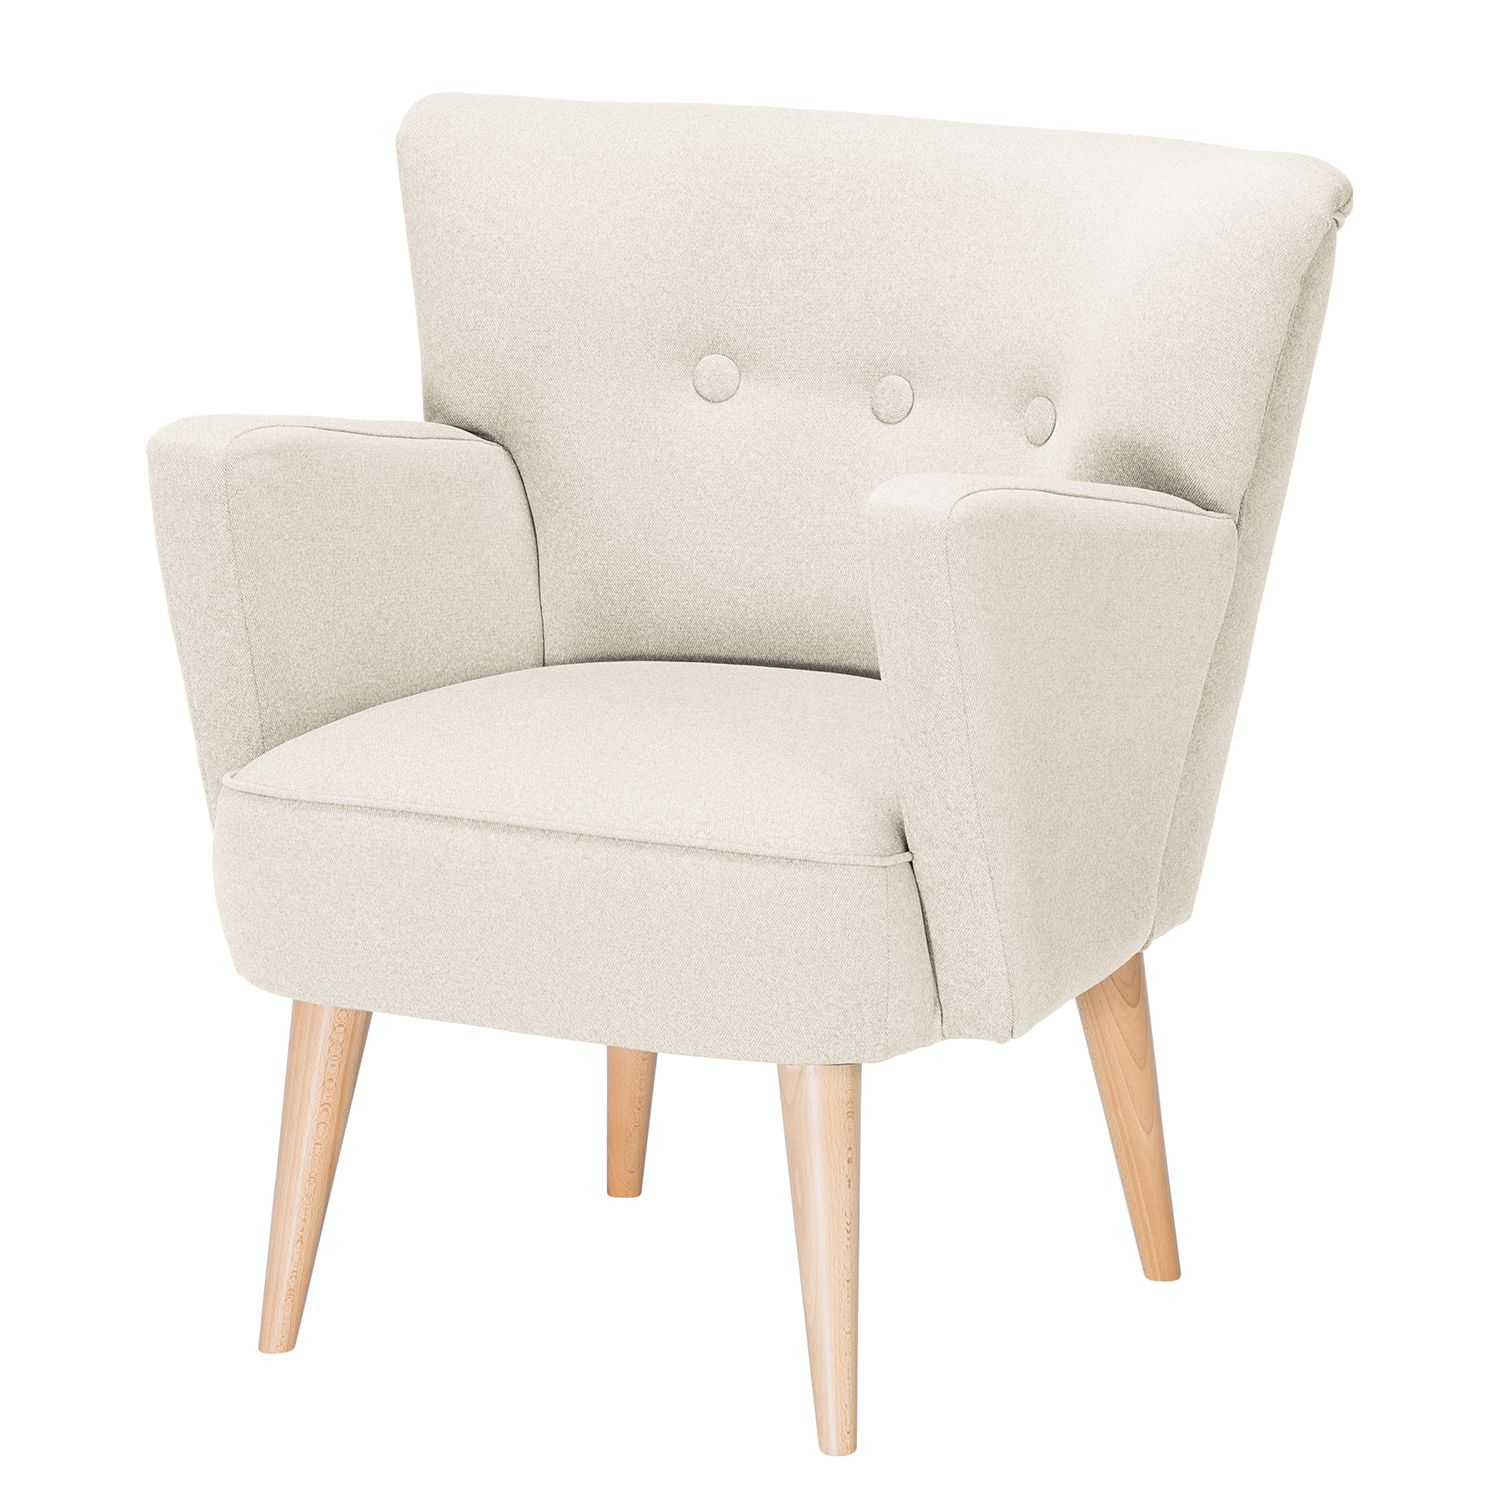 Fauteuil Bumberry - Tissu - Beige clair, Morteens